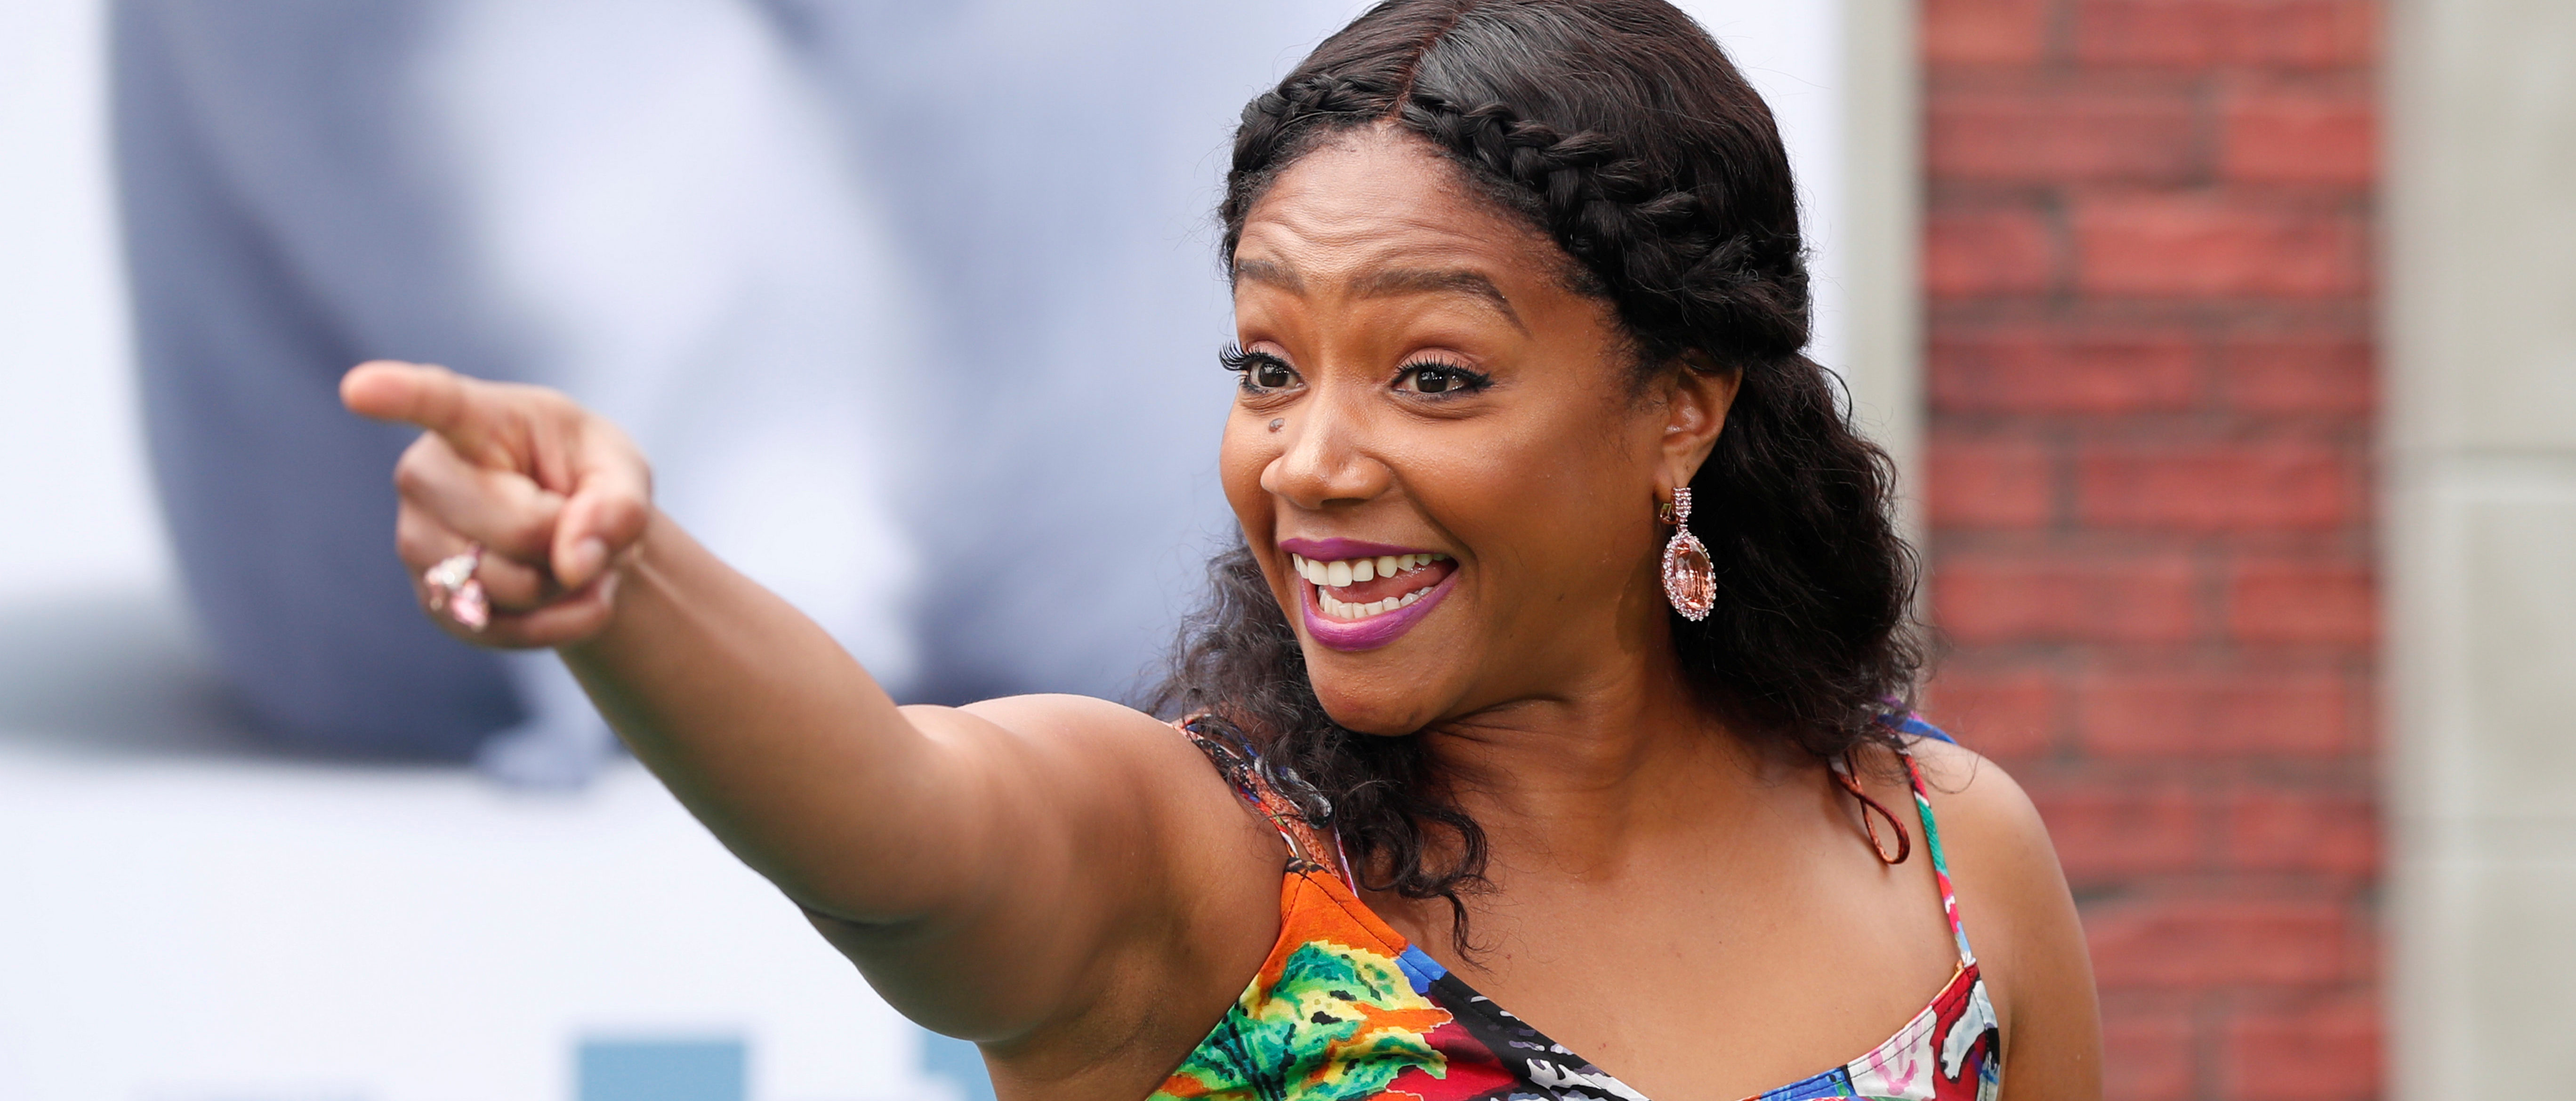 "Tiffany Haddish poses at the premiere for ""The Secret Life of Pets 2"" in Los Angeles, California, U.S., June 2, 2019. REUTERS/Mario Anzuoni"